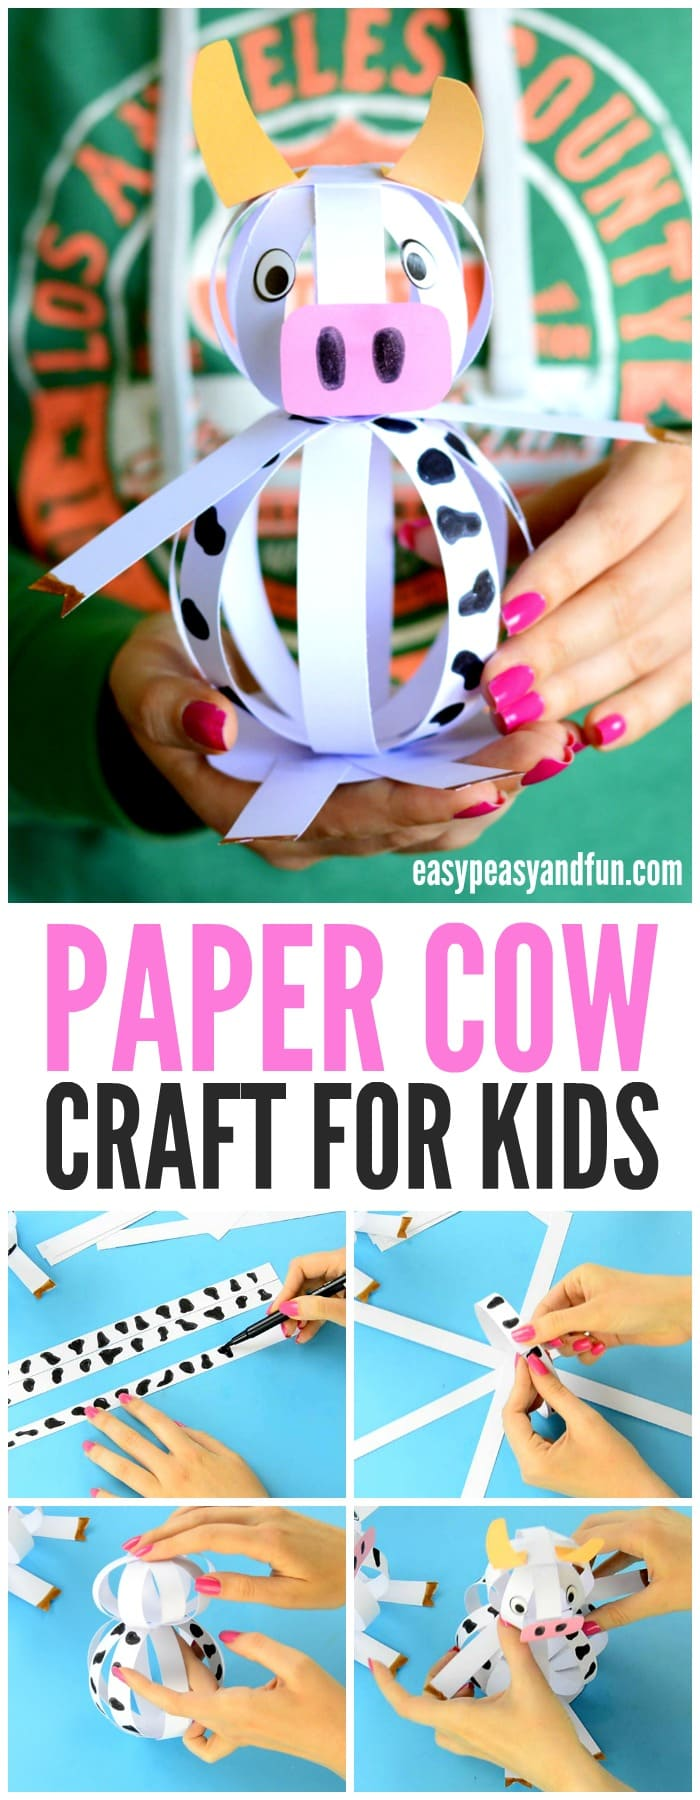 Adorable Easy Paper Cow Craft for Kids to Make